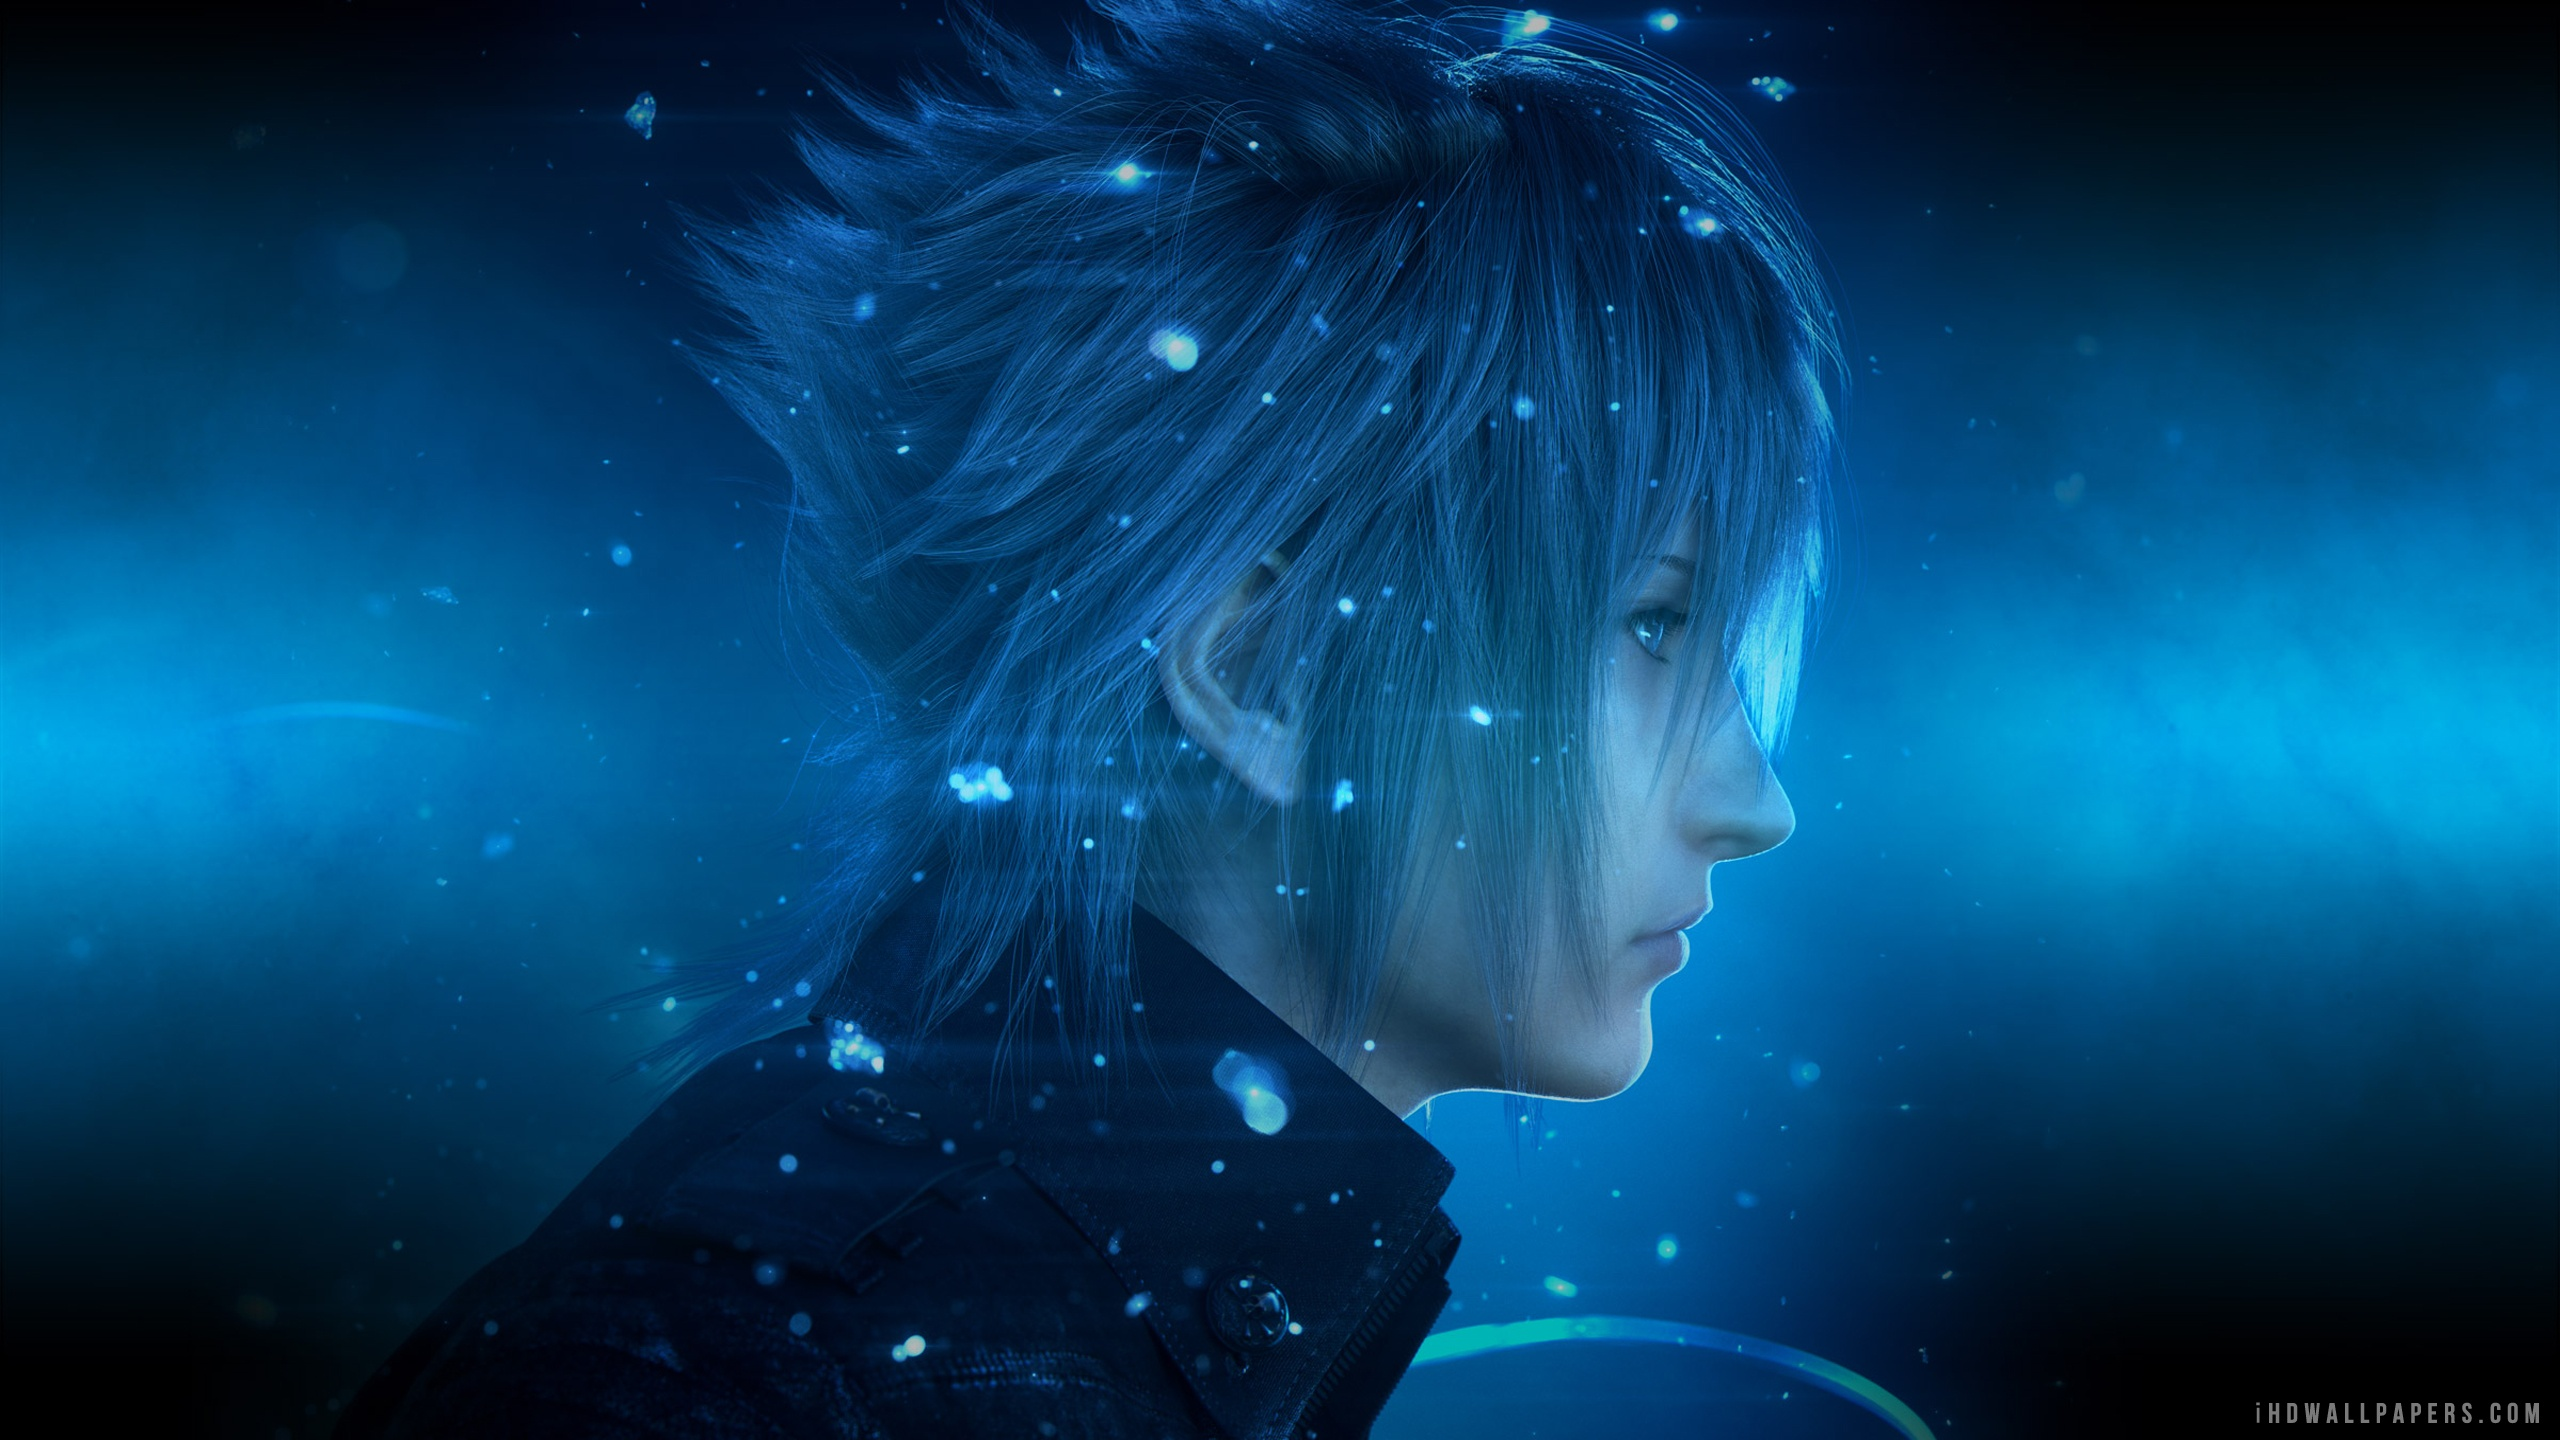 Final Fantasy Xv Hd Wallpapers Free Download